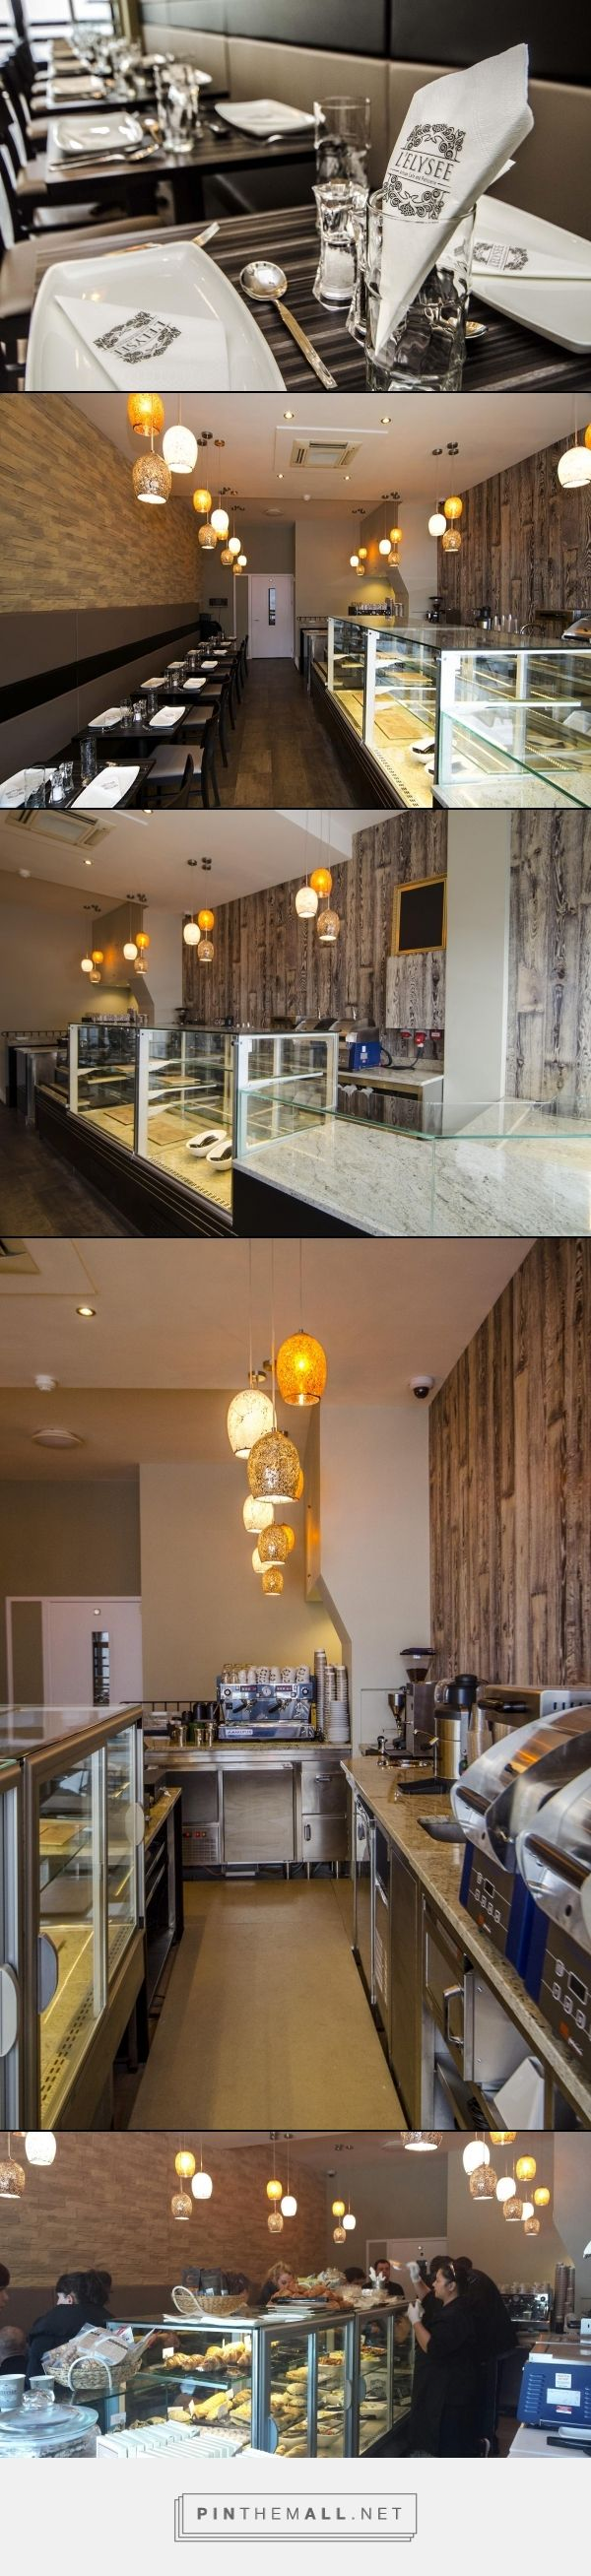 Catersales worked with artisan patisserie L'Elysee in Hammersmith, London to create an effective layout and counter solution. The front counter displays and back bar counters are bespoke to this popular coffee shop. #coffeeshopdesign #coffeeshopequipment #patisserie #interiordesign #marble #counterdesign